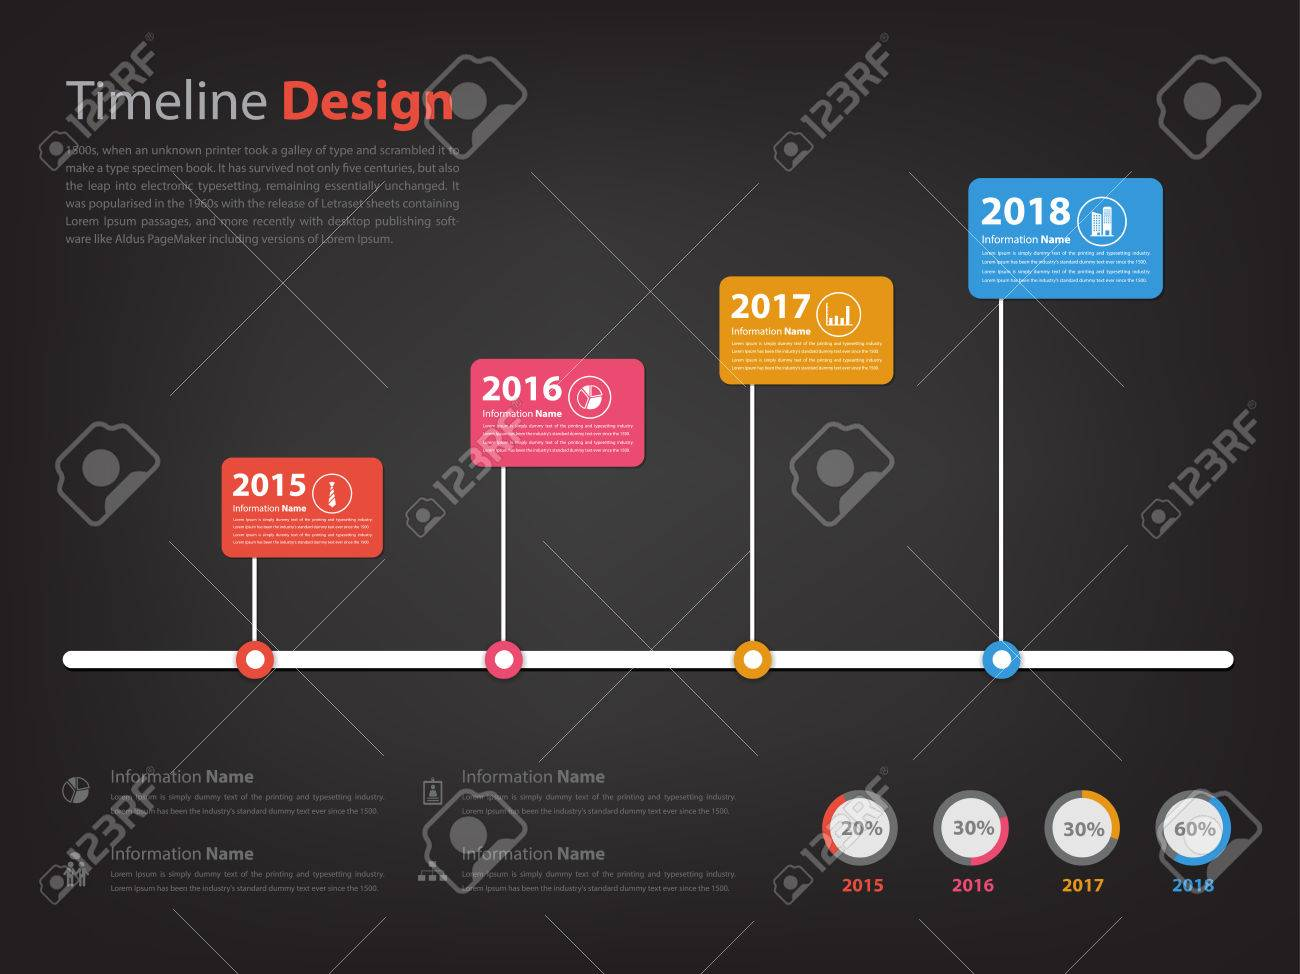 Timeline and Milestone infographic in vector eps10 with black